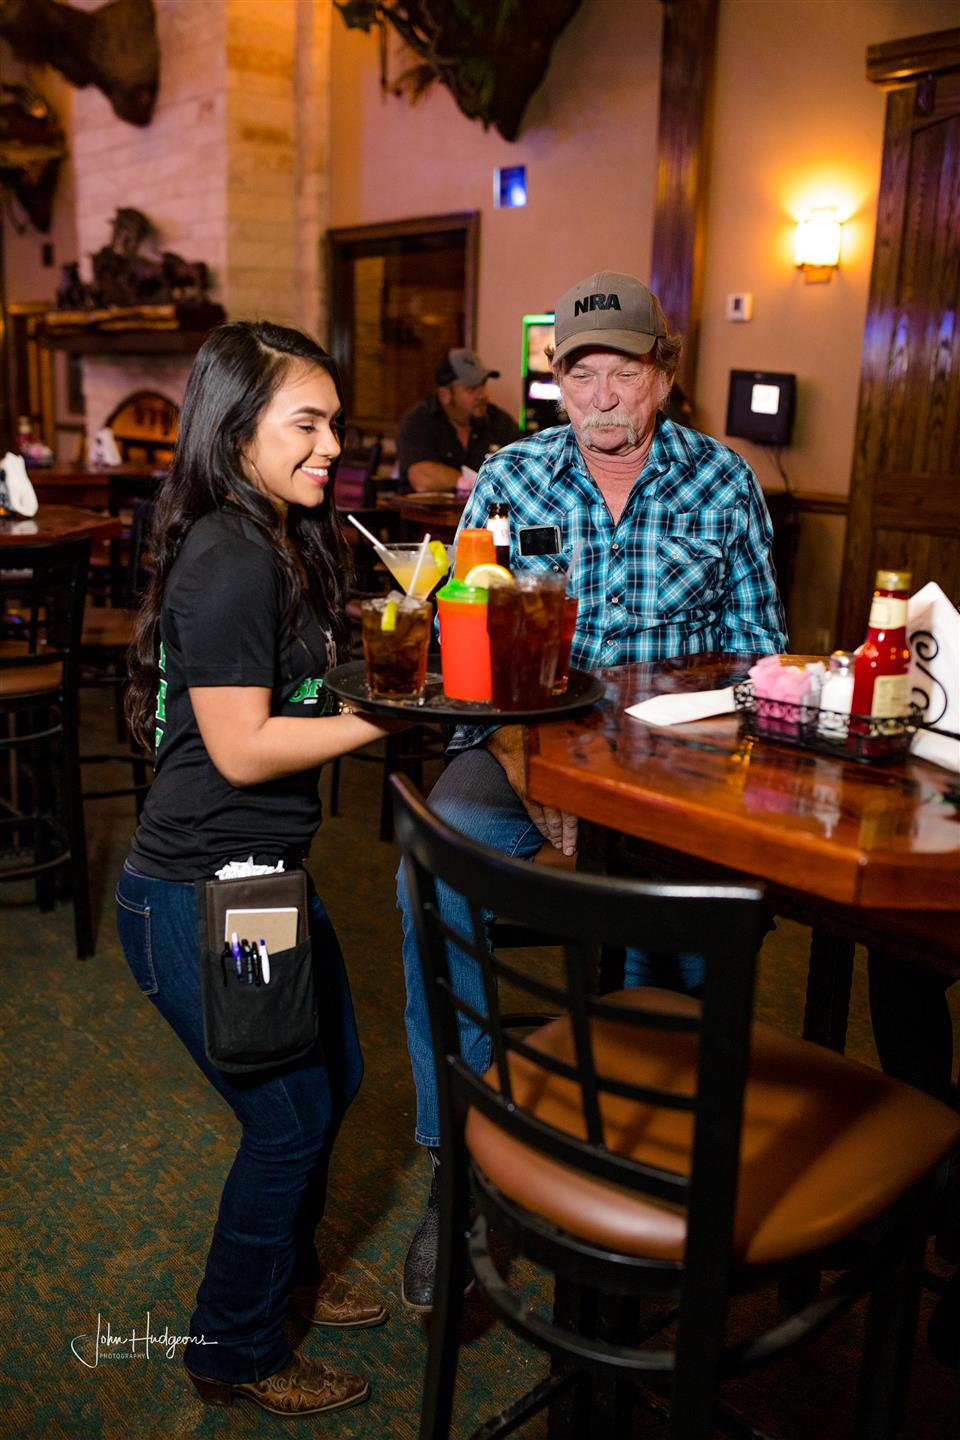 Waitress bringing a tray of drinks to a customer sitting at a table